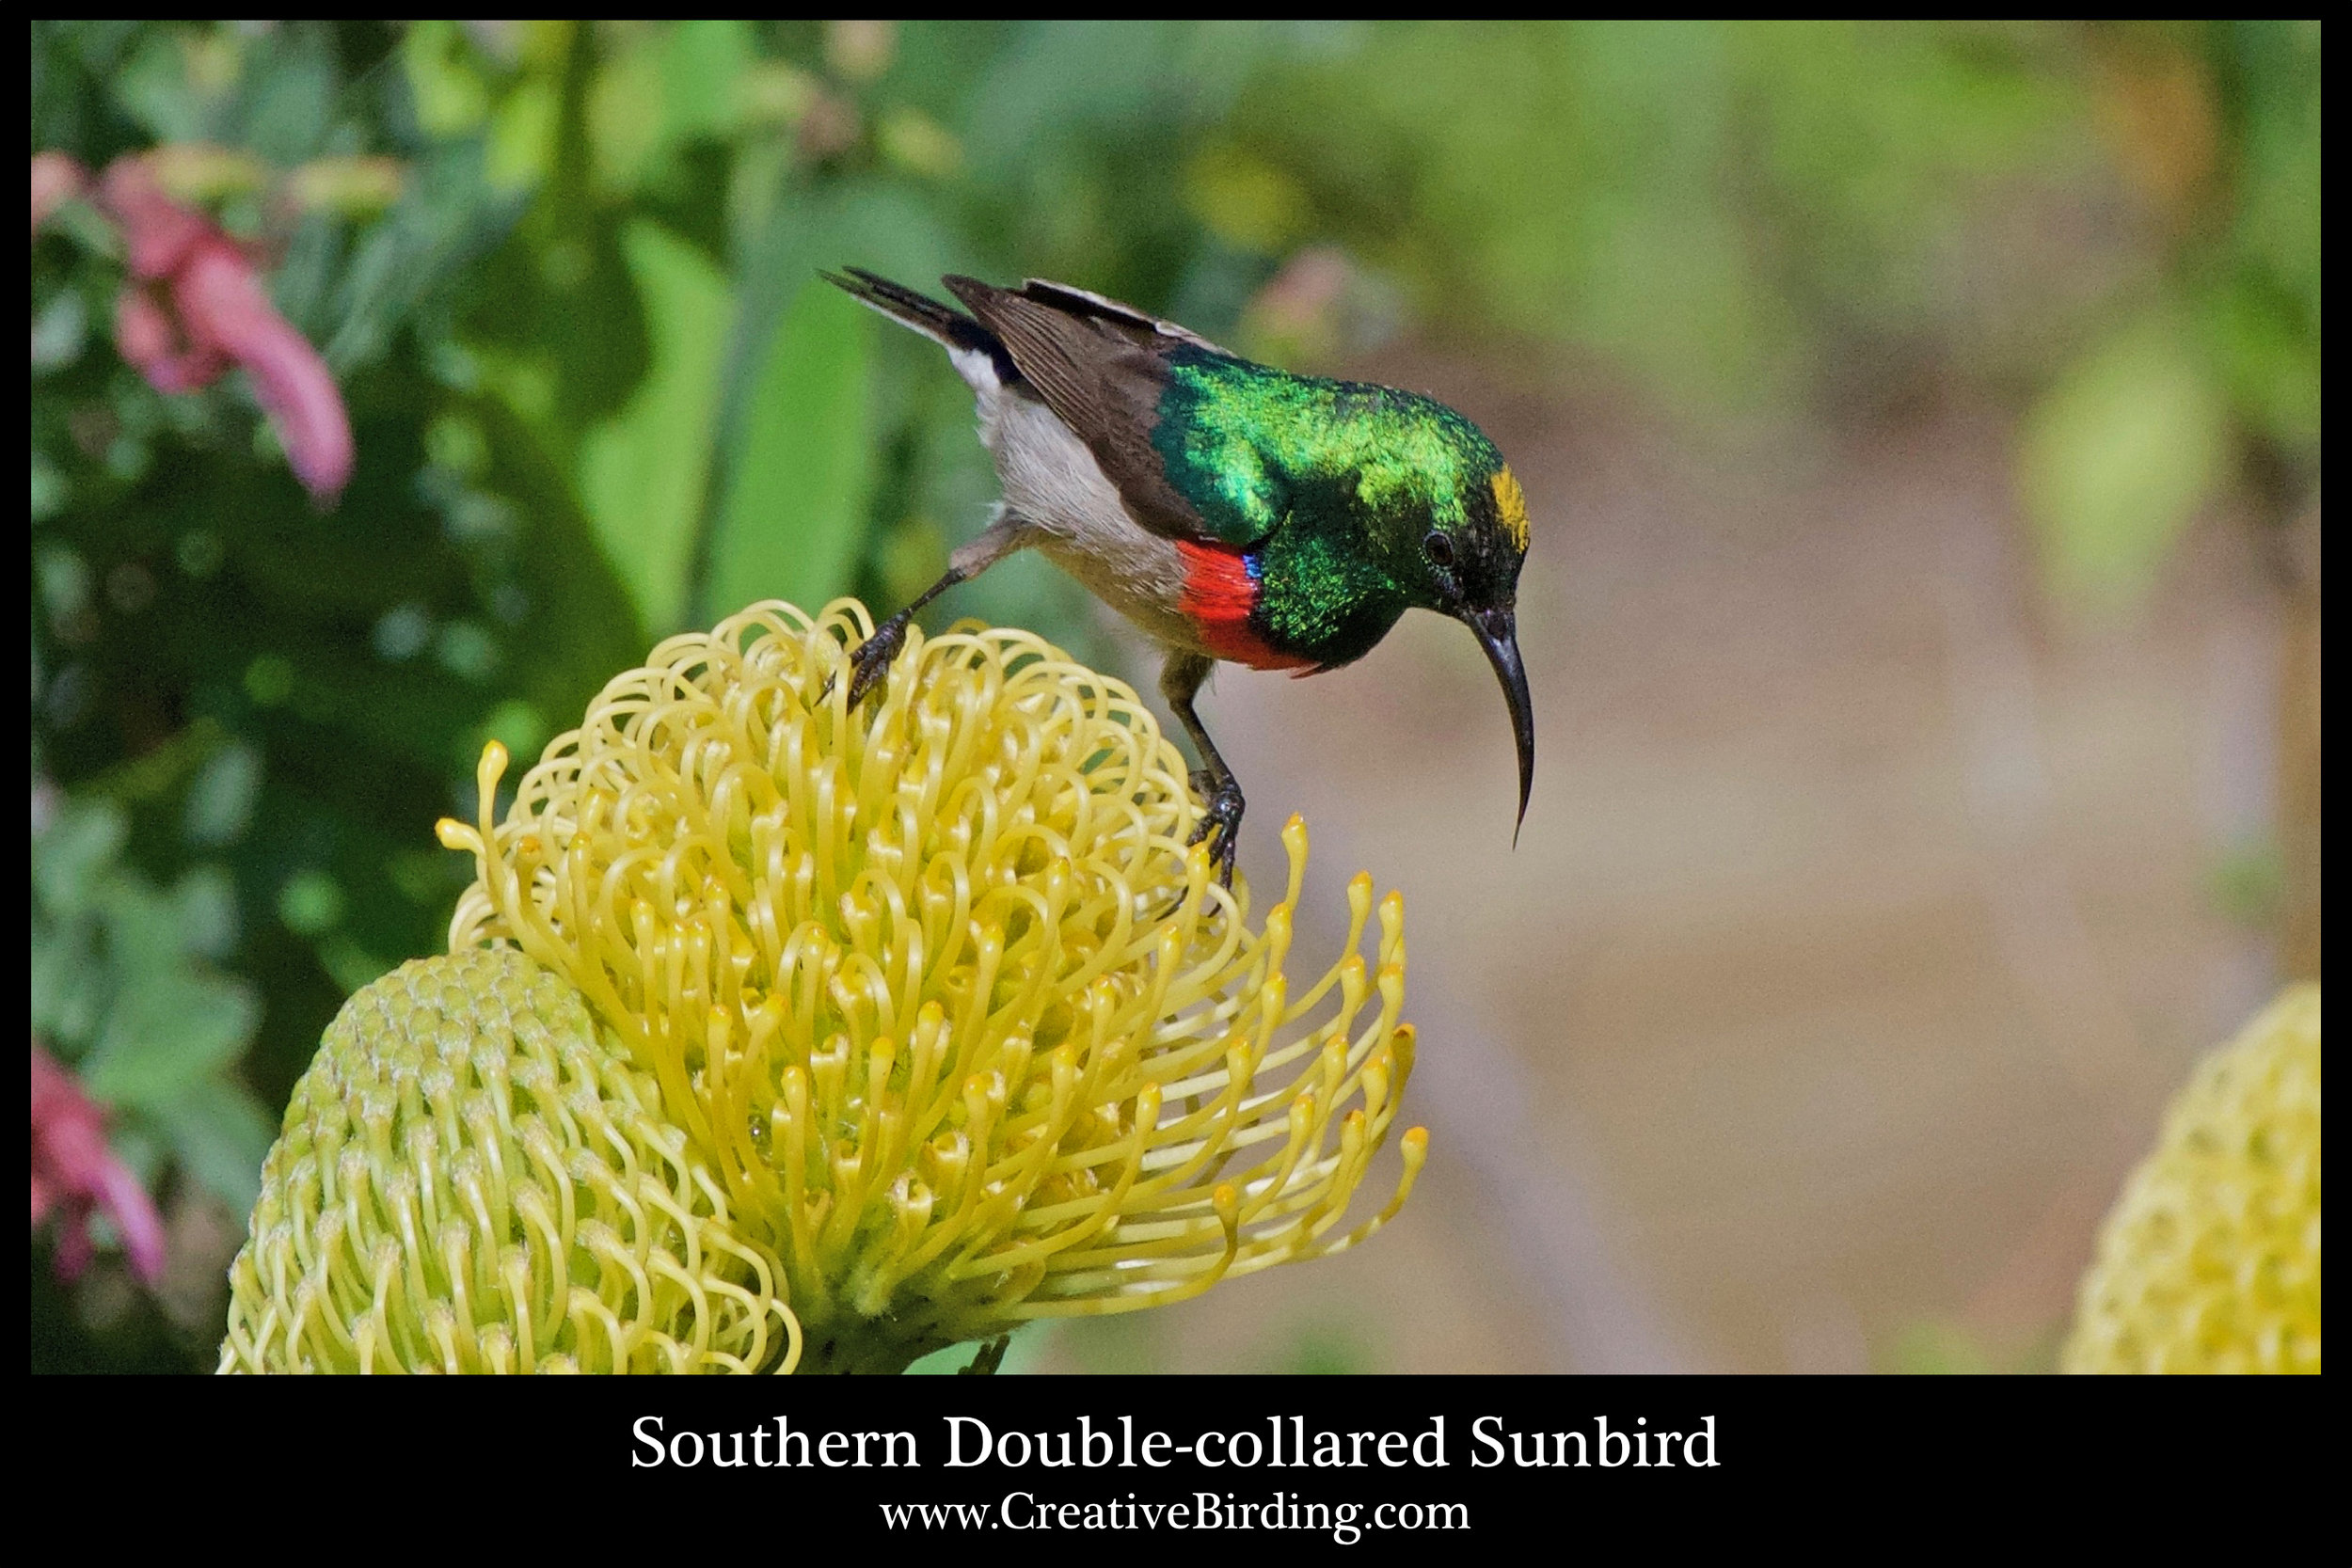 Southern Double-collared Sunbird cb1.jpg